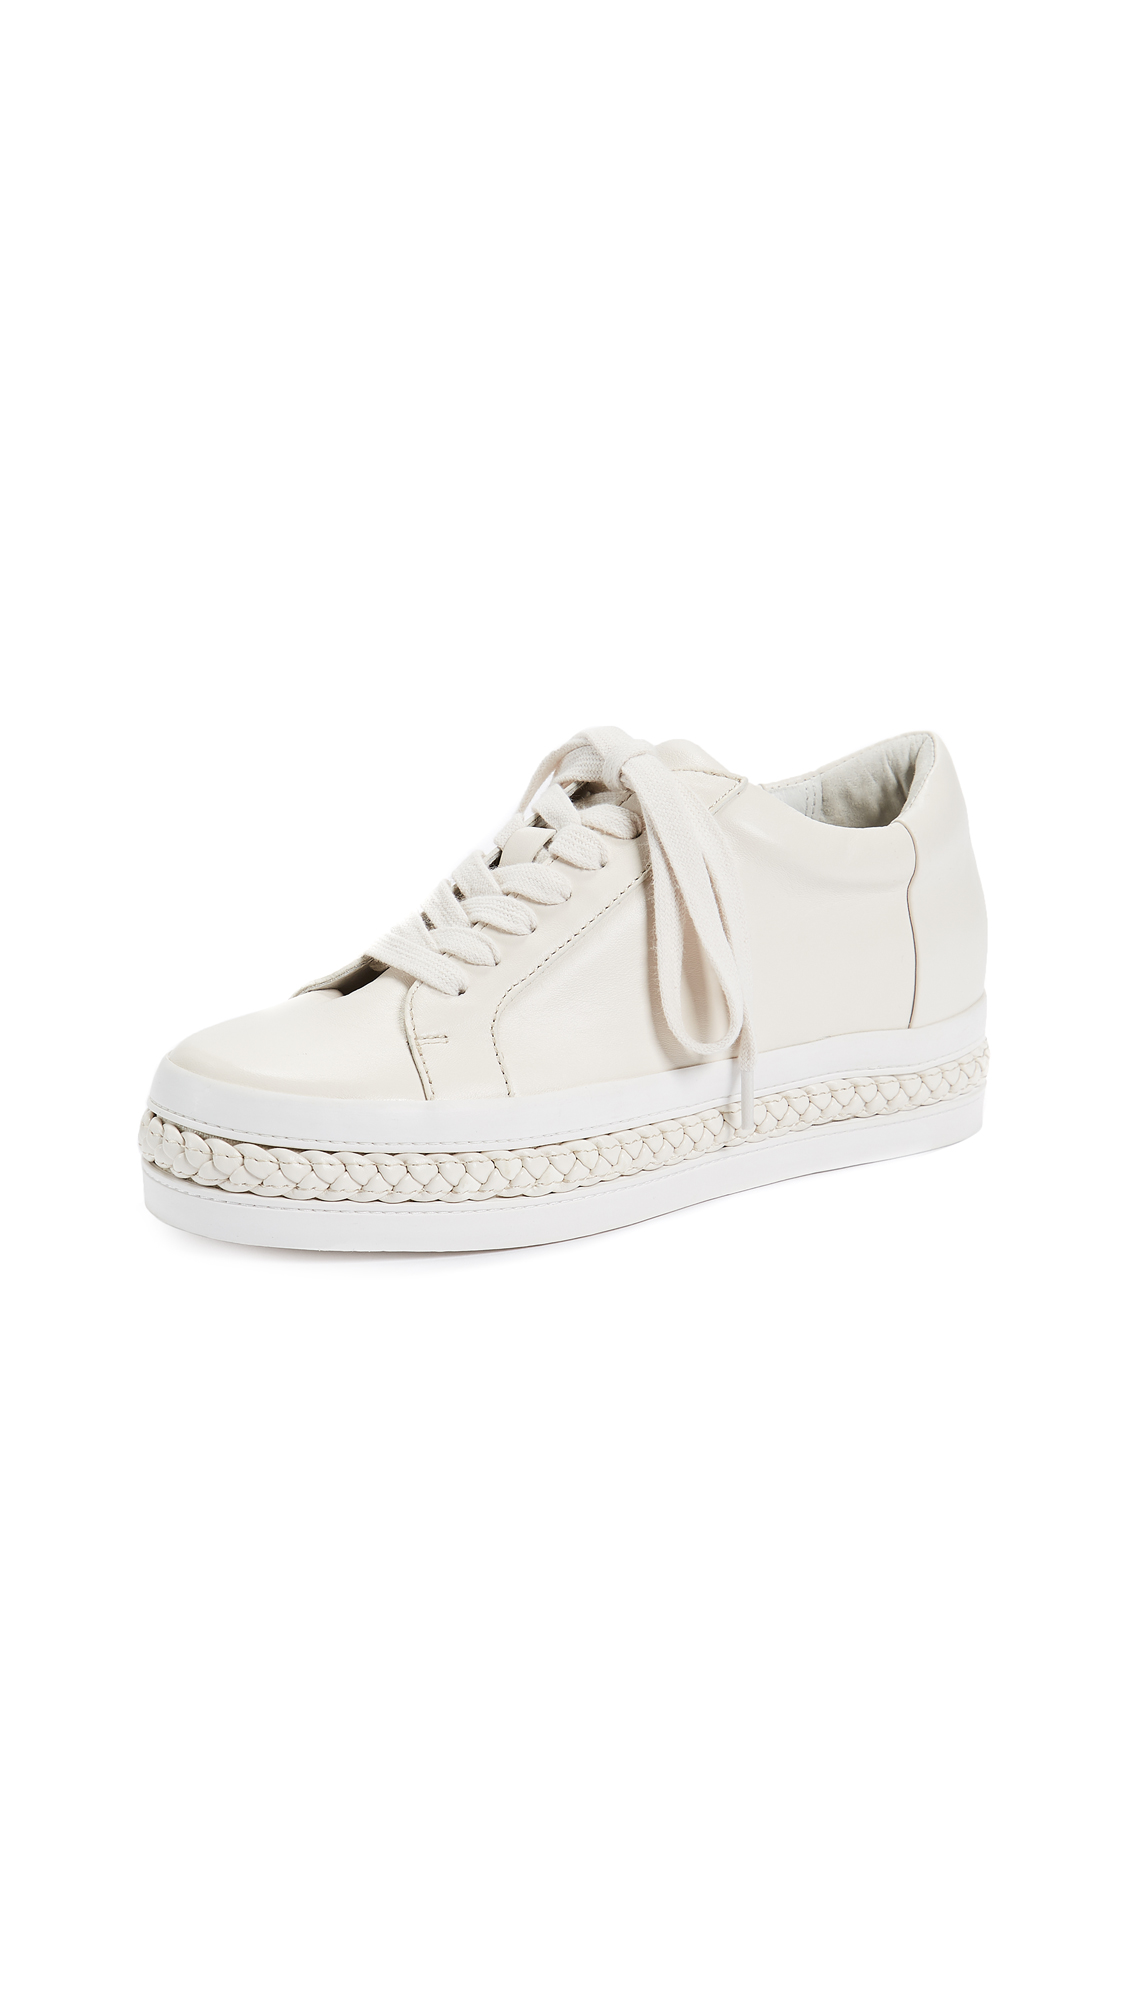 Rachel Zoe Collette Braid Sneakers